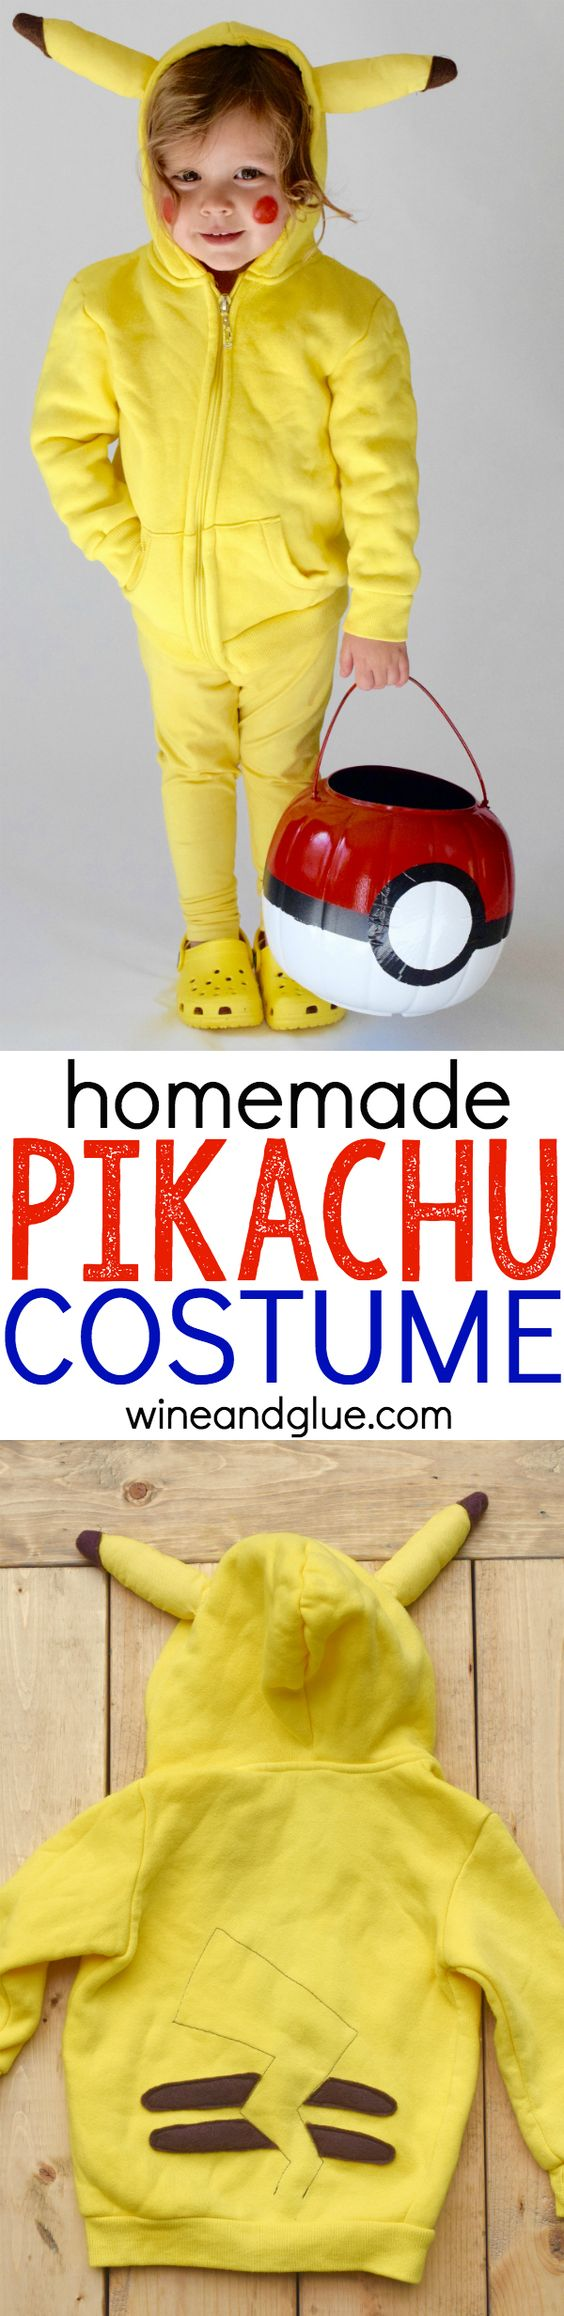 Pokemon Pikachu Costume.